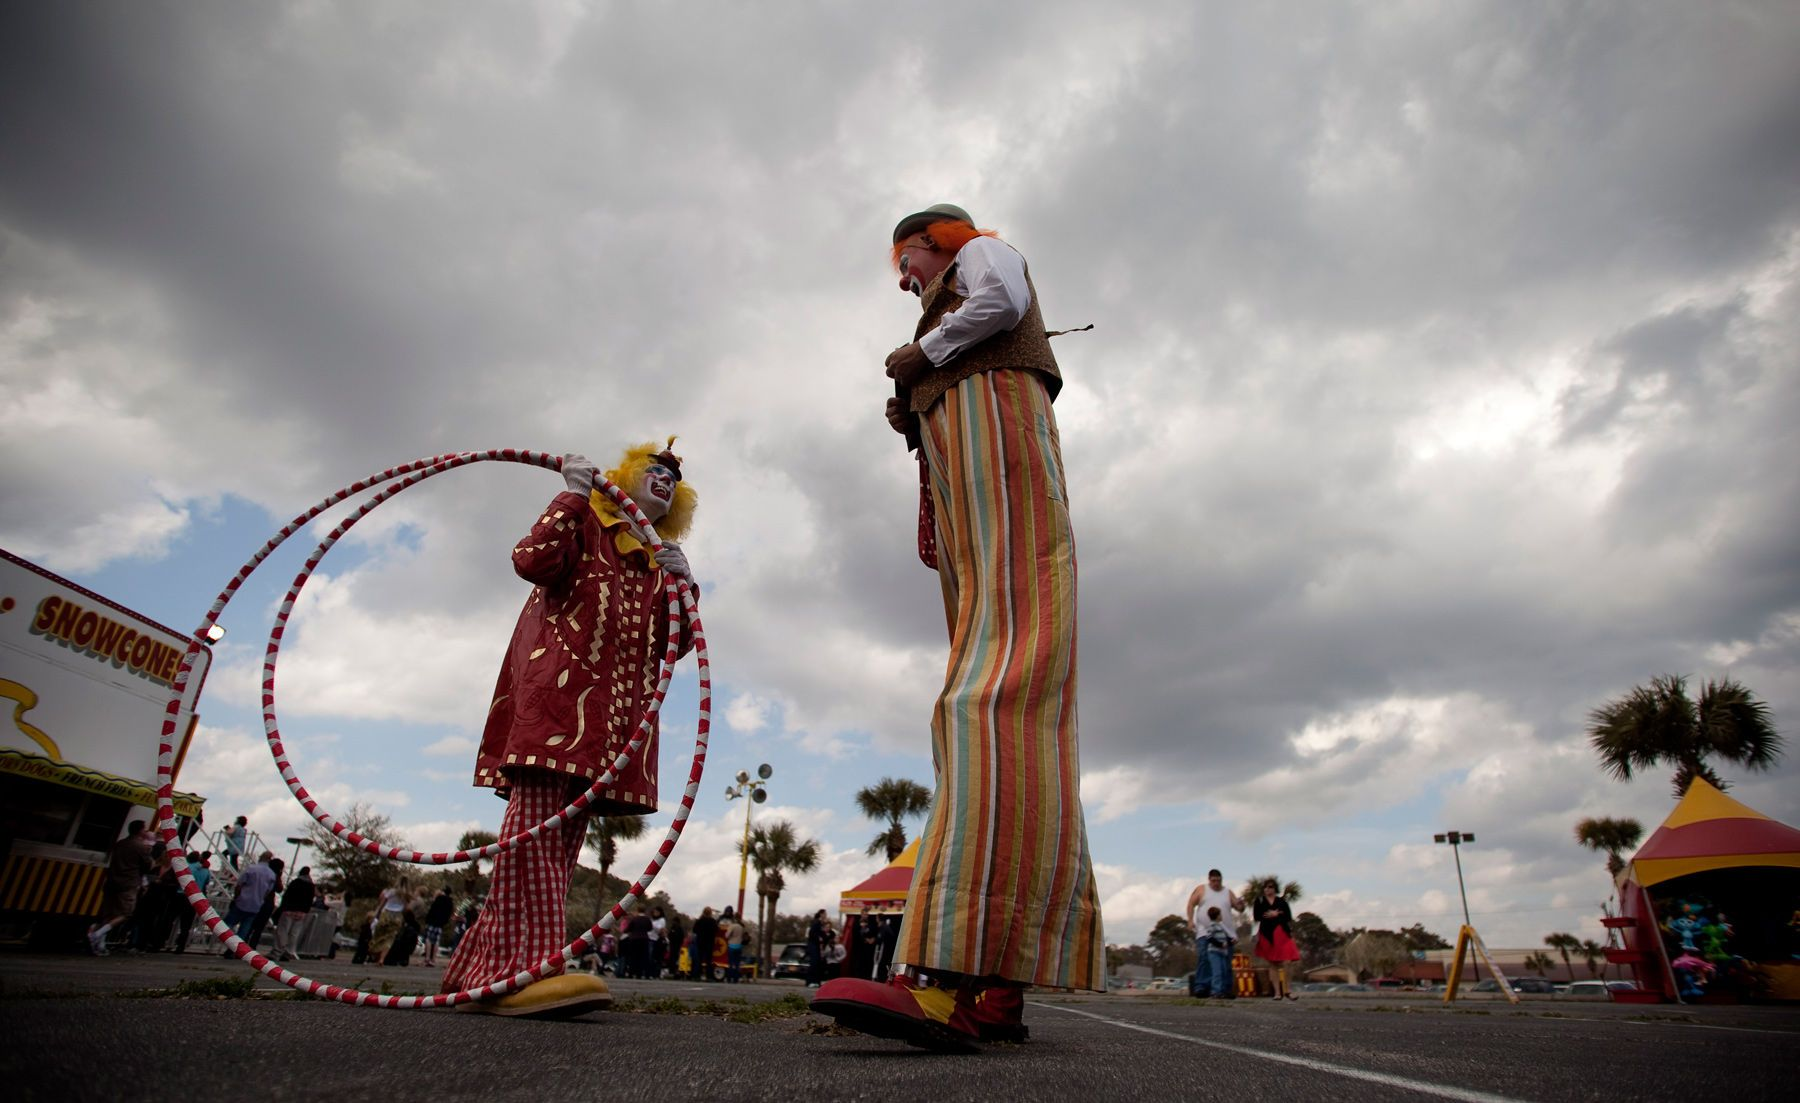 Josh Dummitt (center) as Meatball the clown and Julius Carallo as Clown Chips, prepare for the Cole Brothers Circus of the Stars show in Myrtle Beach, South Carolina March 31, 2013. Traveling circuses such as the Cole Brothers Circus of the Stars, complete with it's traveling big top tent, set up their tent city in smaller markets all along the East Coast of the United States as they aim to bring the circus to rural areas. The Cole Brothers Circus, now in its 129th edition, travels to 100 cities in 20-25 states and stages 250 shows a year.    For Reuters